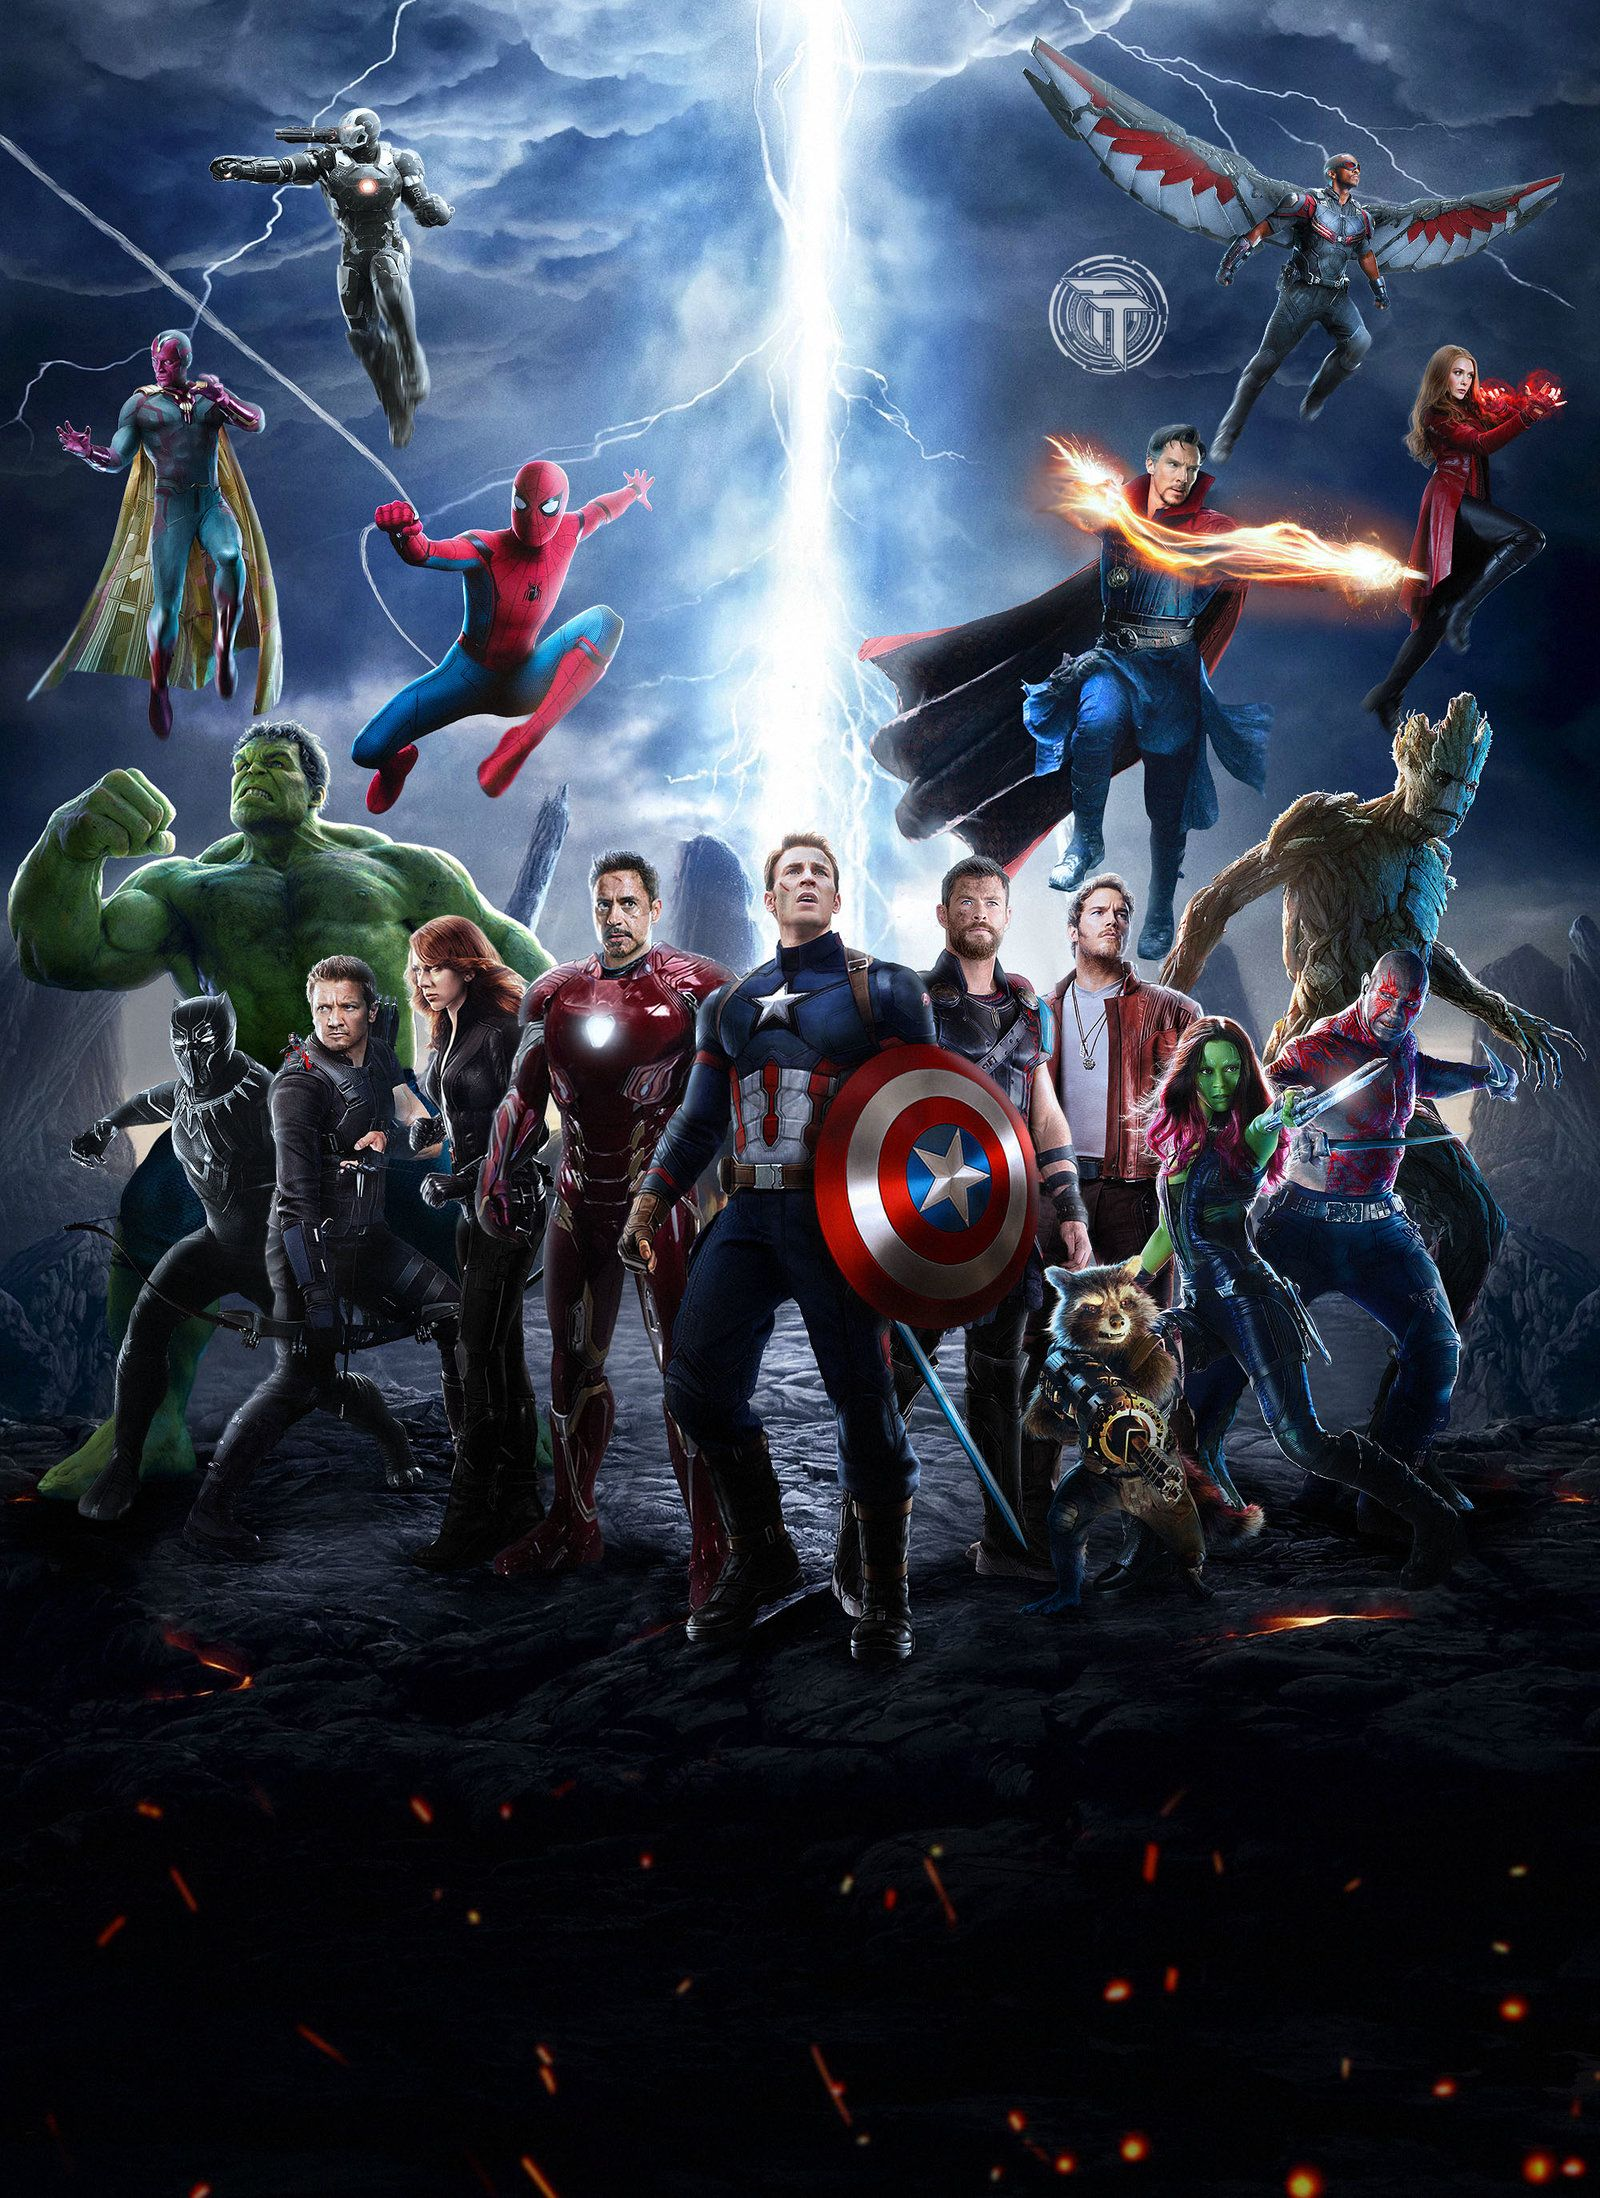 The First Trailer for Avengers: Infinity War Is Finally Out, And Holy S**t This Looks Epic